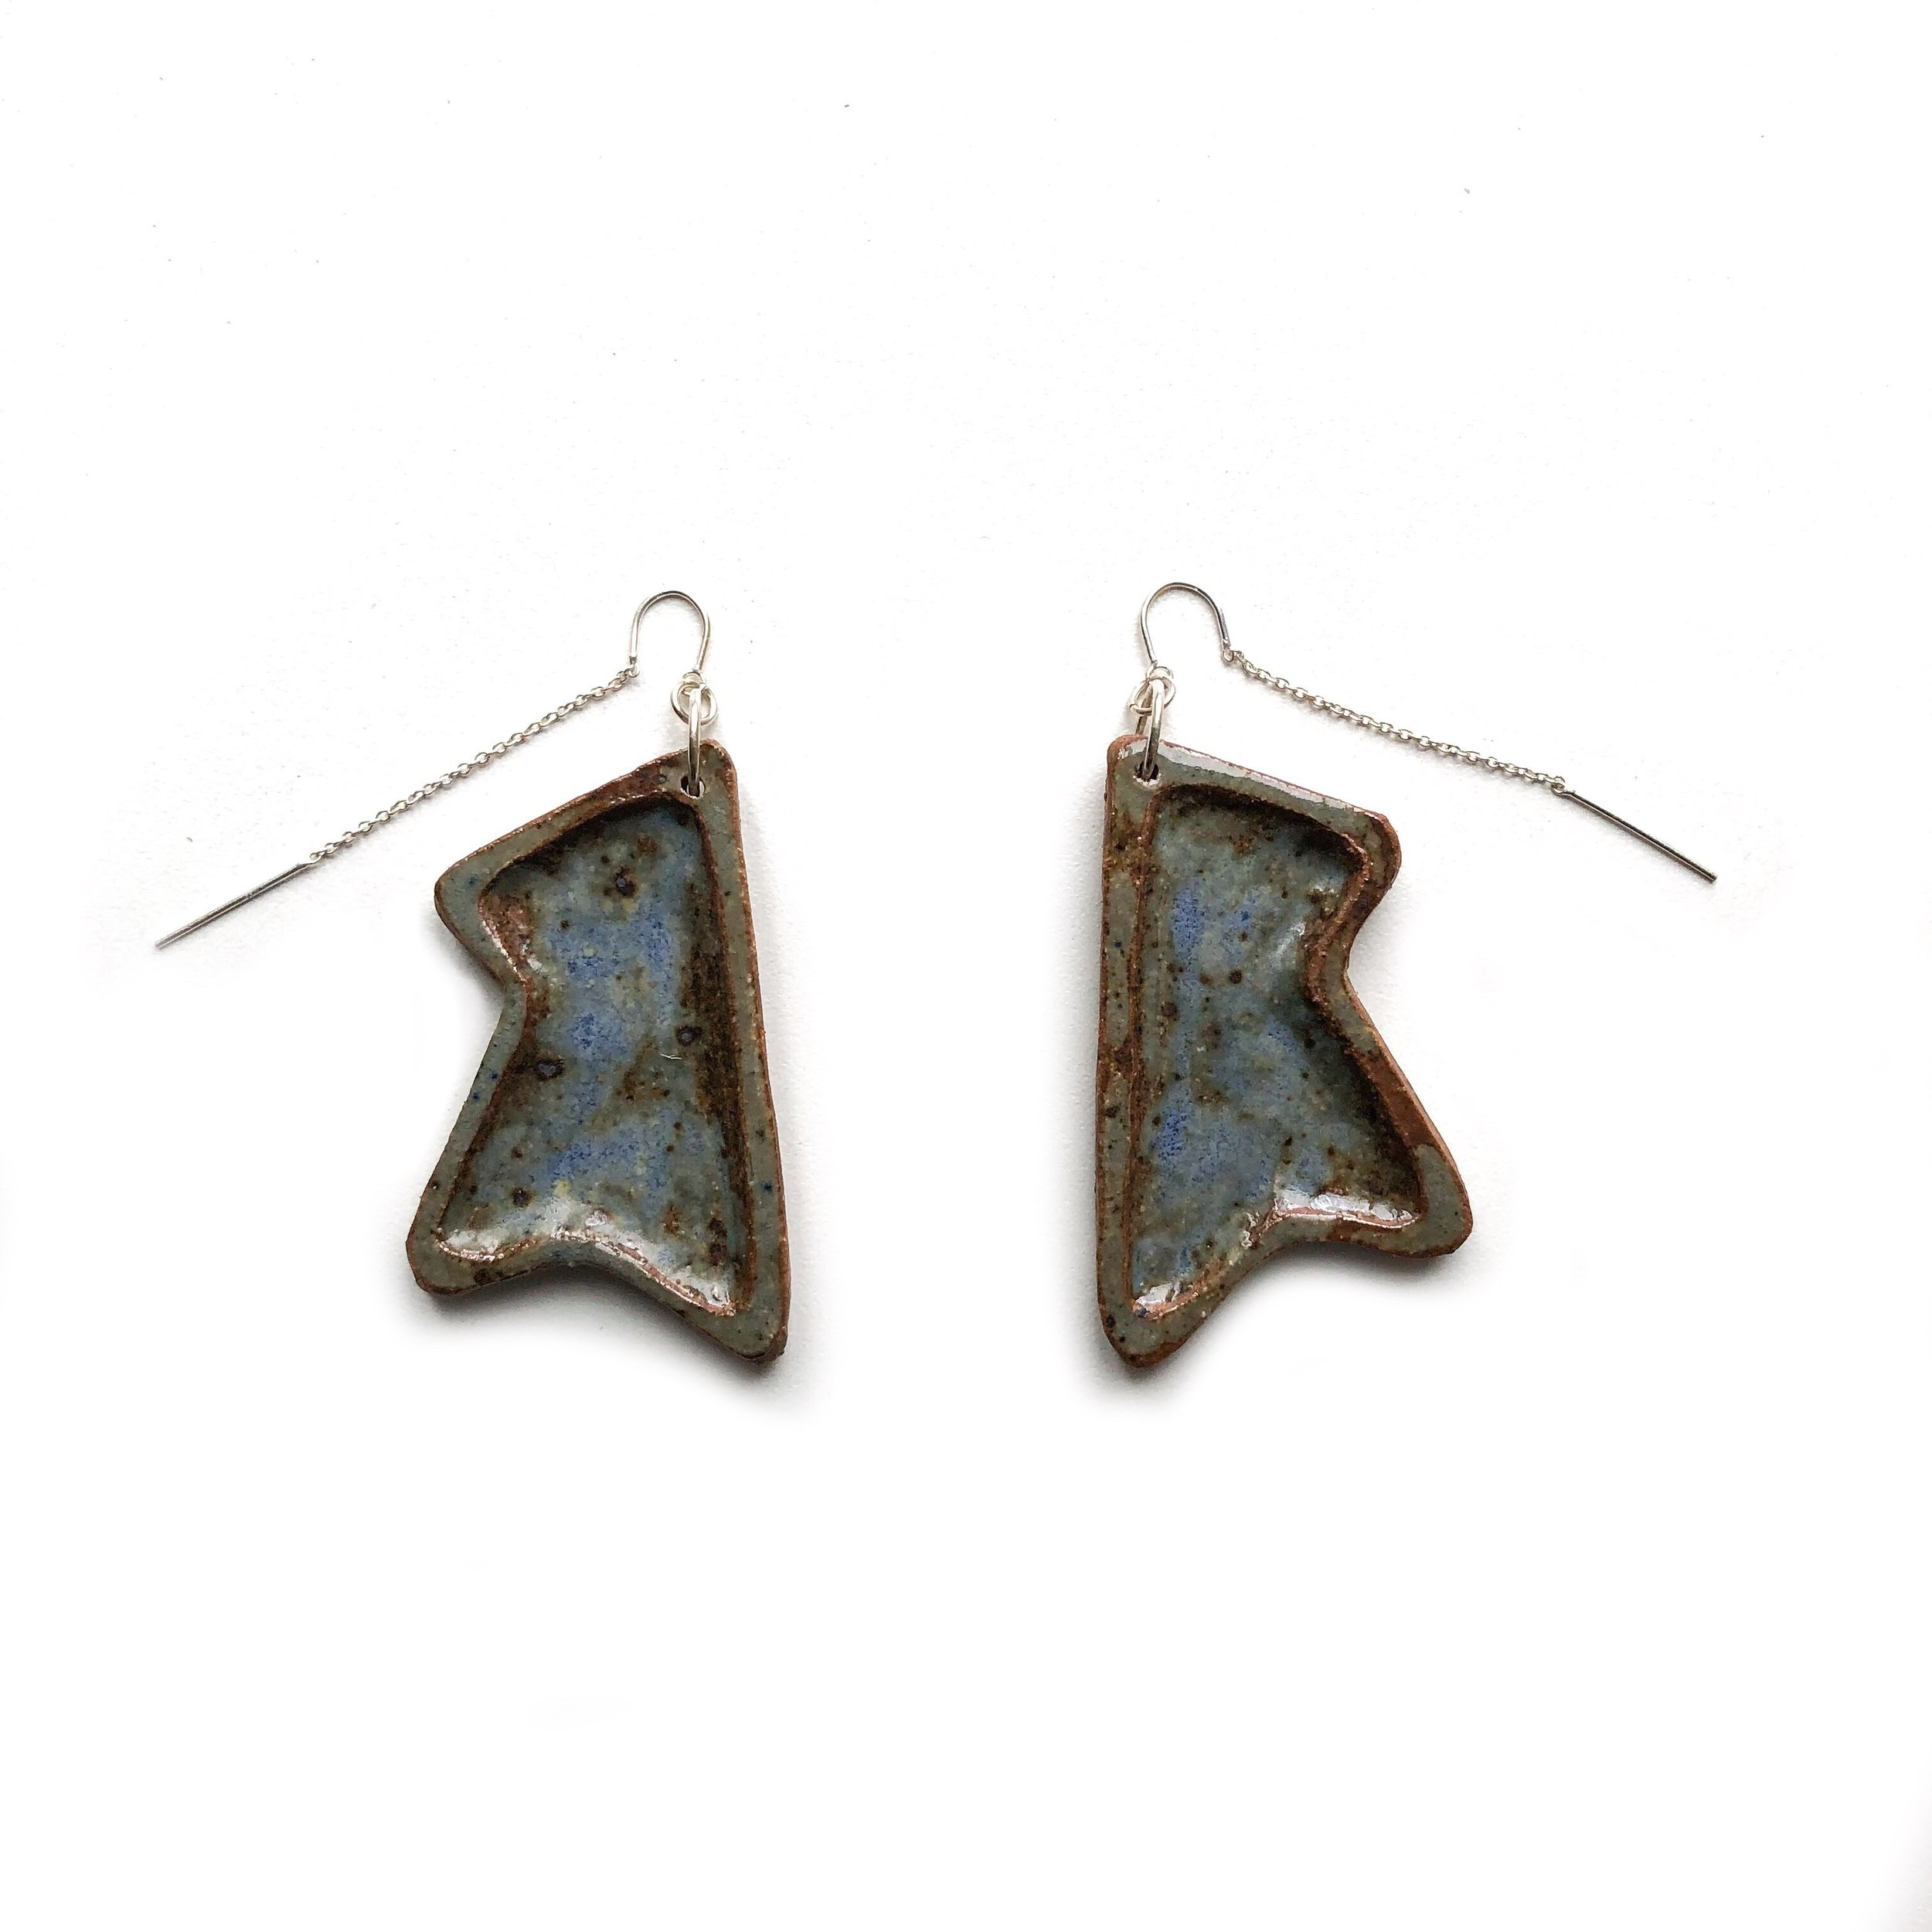 kushins_ceramic_earrings4.JPG